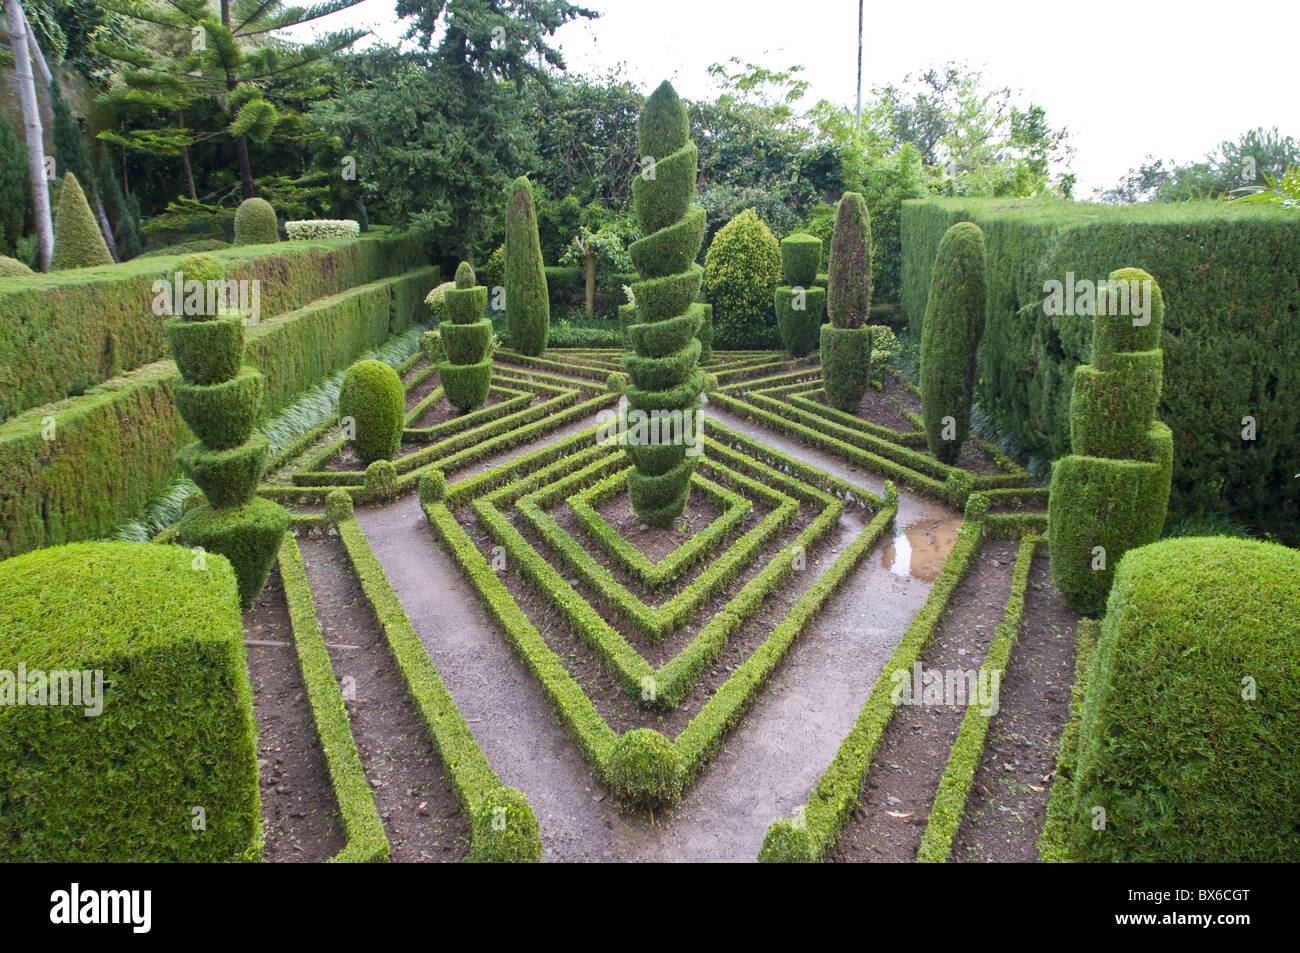 Topiary in formal garden, Botanical Garden, Funchal, Madeira, Portugal, Europe - Stock Image